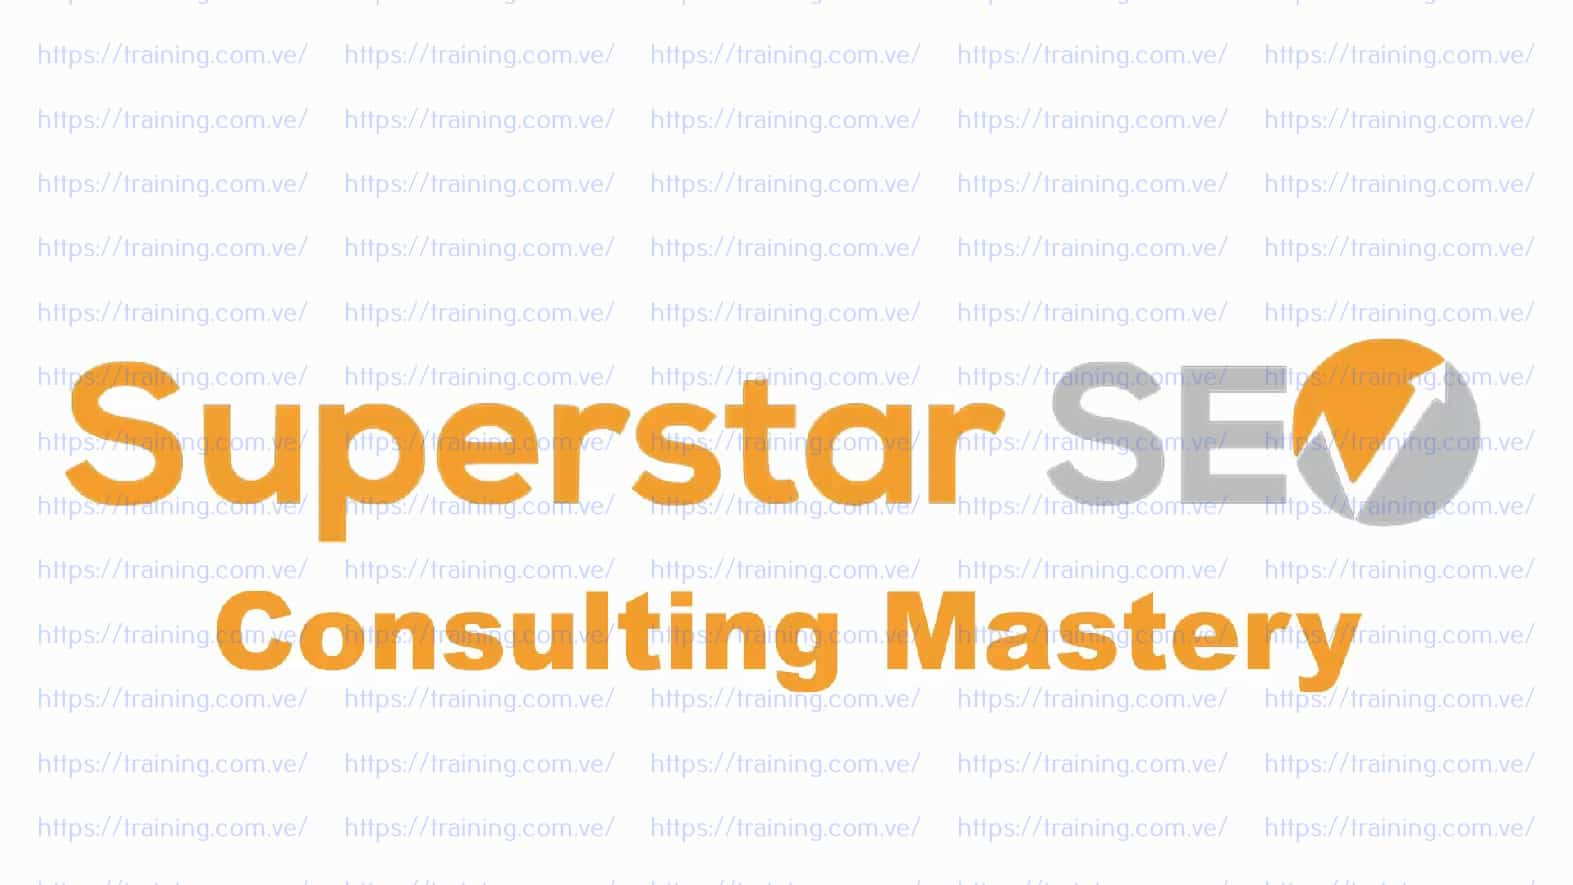 Superstar SEO Consulting Master Download